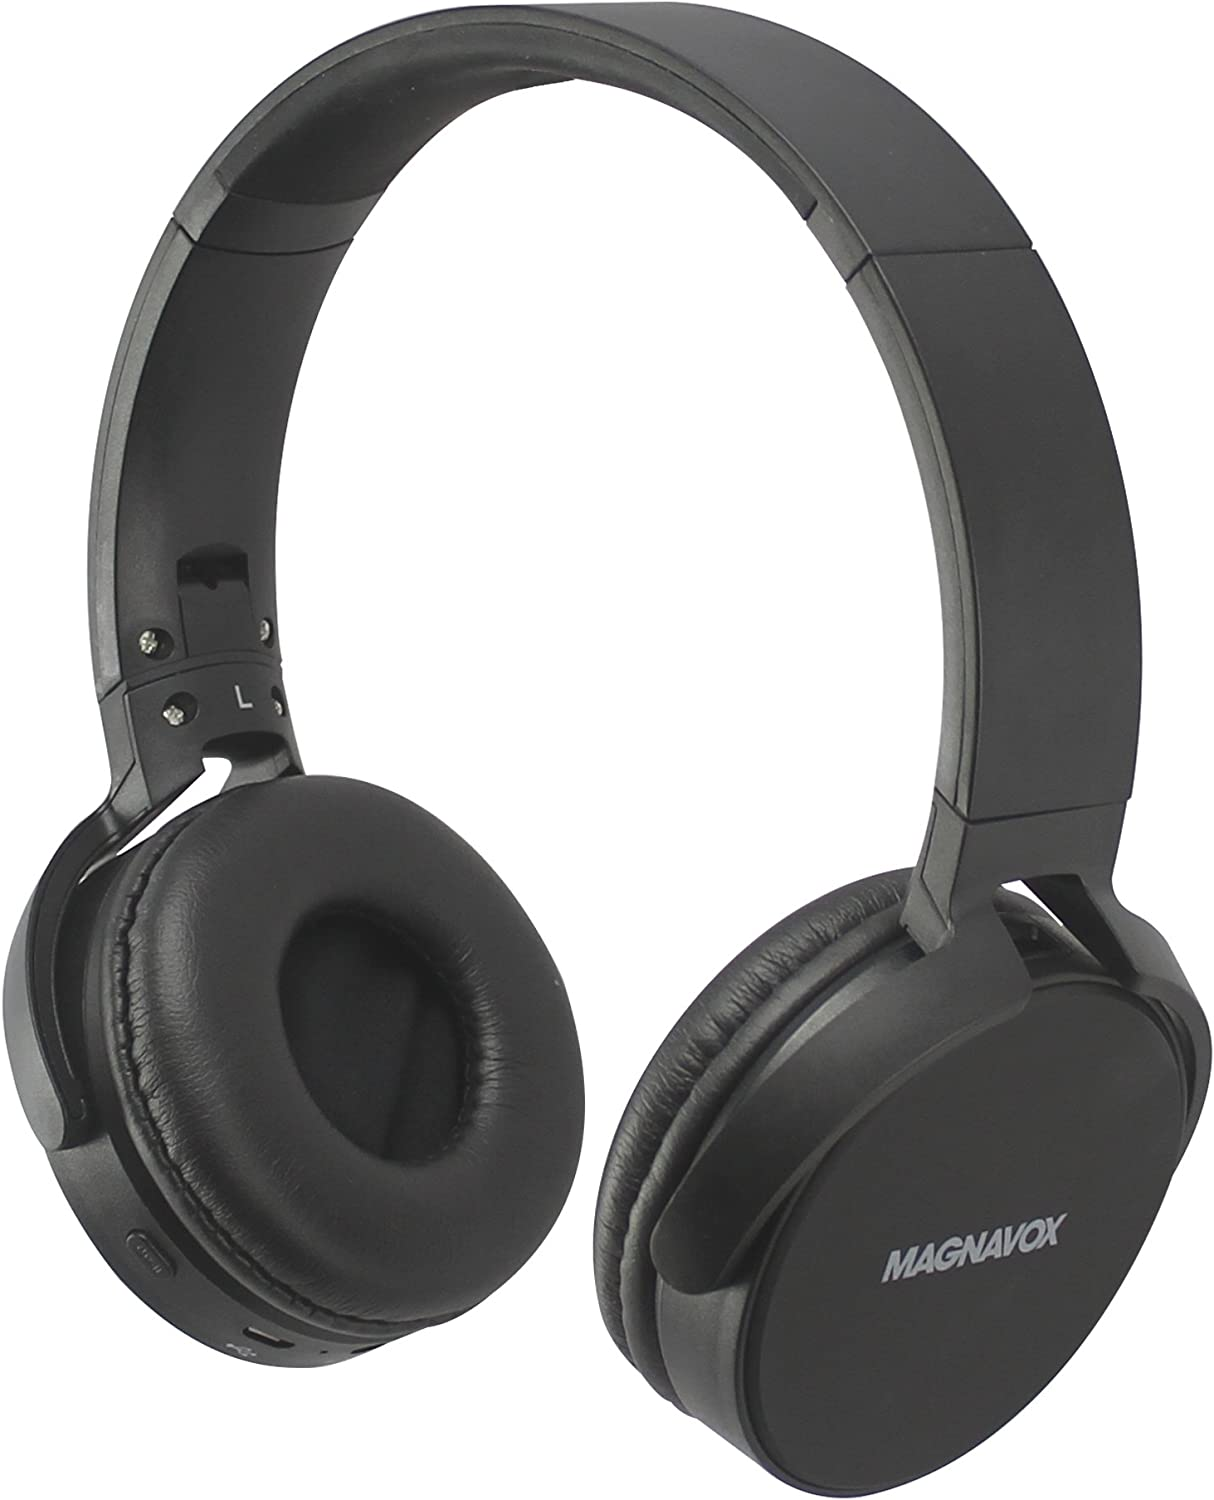 Magnavox MHB542-BK Wireless New DJ Flat Foldable Headphones Black